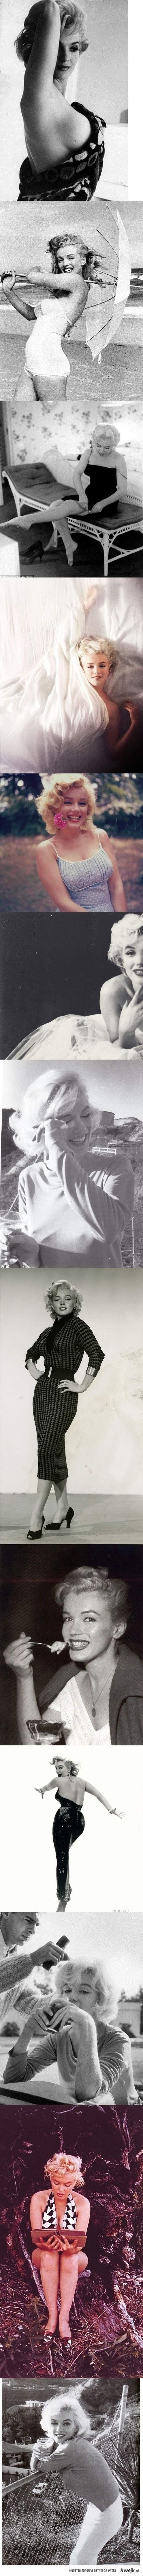 Top image is of Hungarian model-actress Eva Six, NOT Marilyn Monroe!